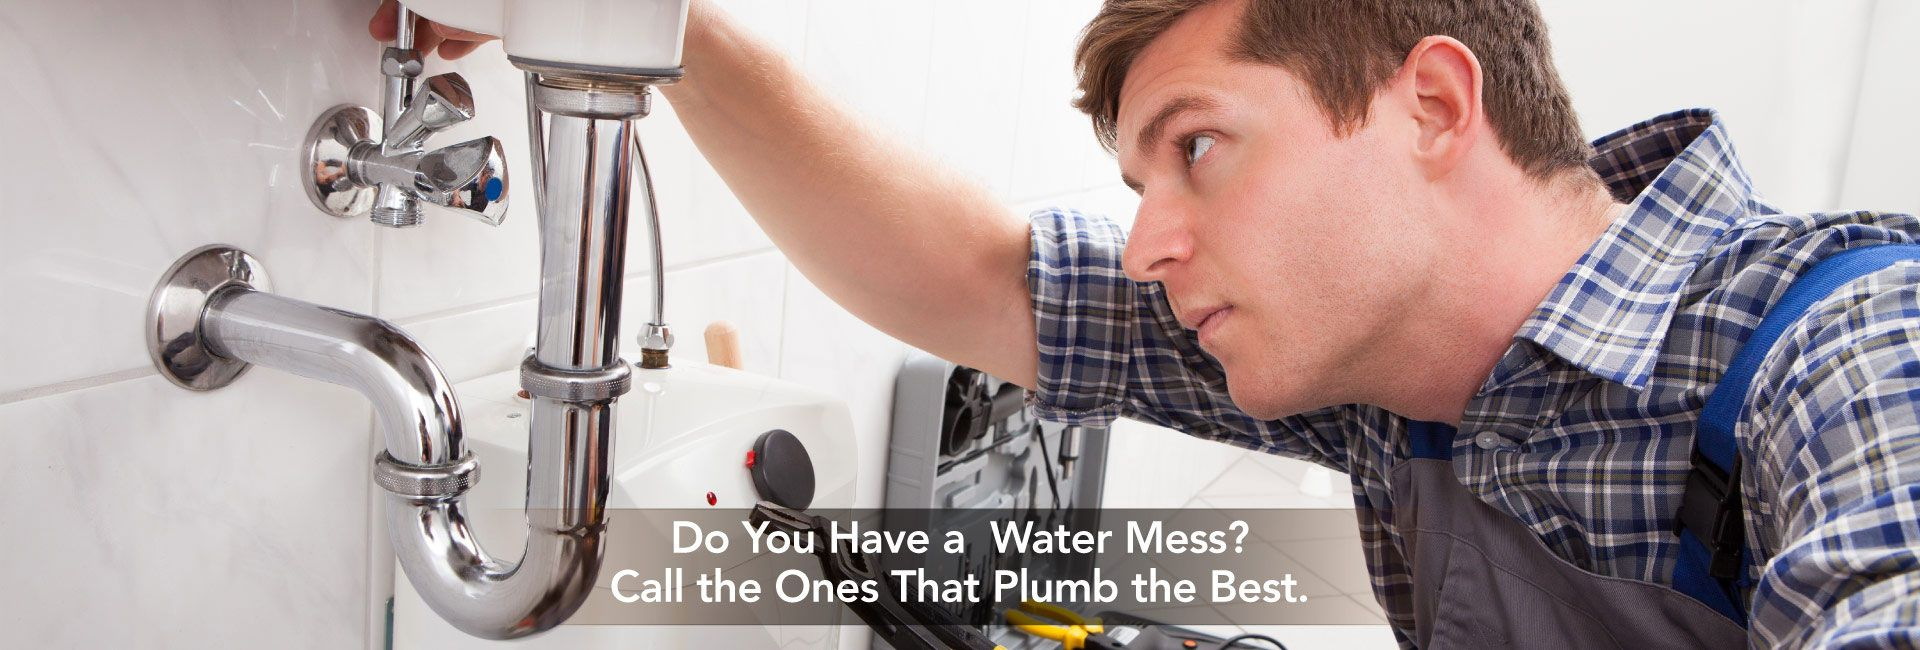 Do You Have a Water Mess? Call the Ones That Plumb the Best. | Plumber repairing the bathroom sink